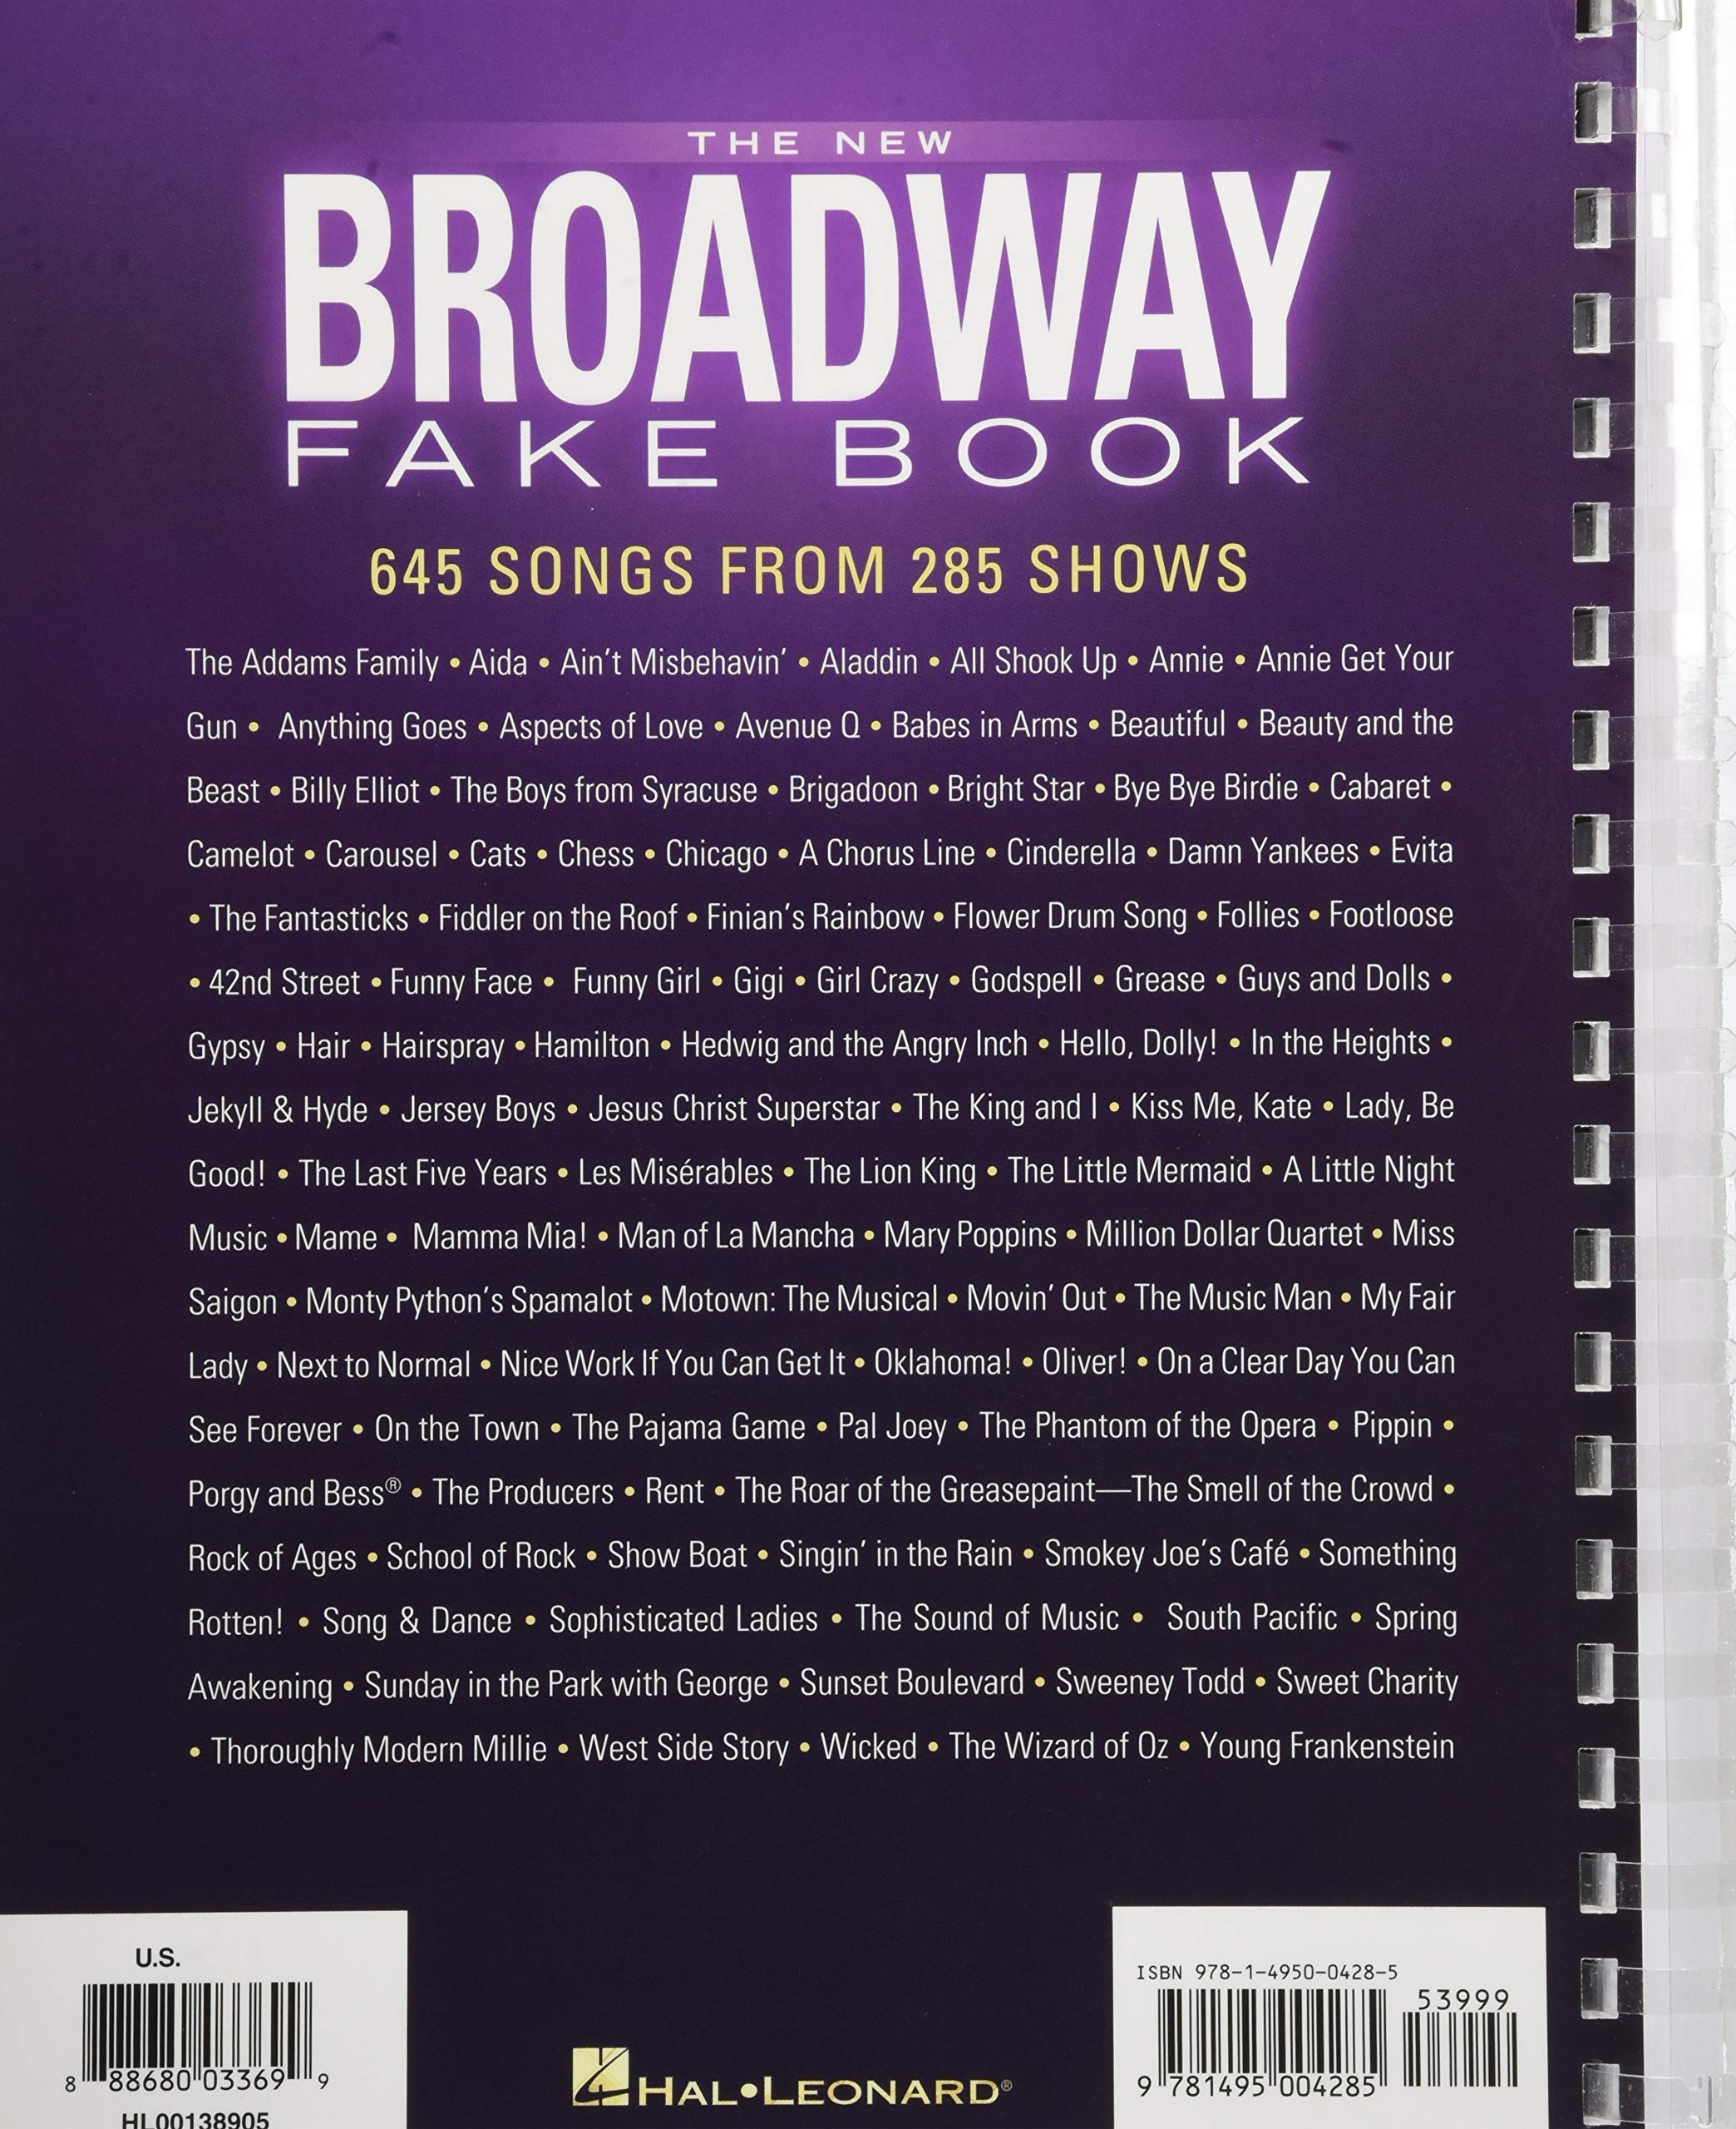 The New Broadway Fake Book: 645 Songs from 285 Shows: Hal